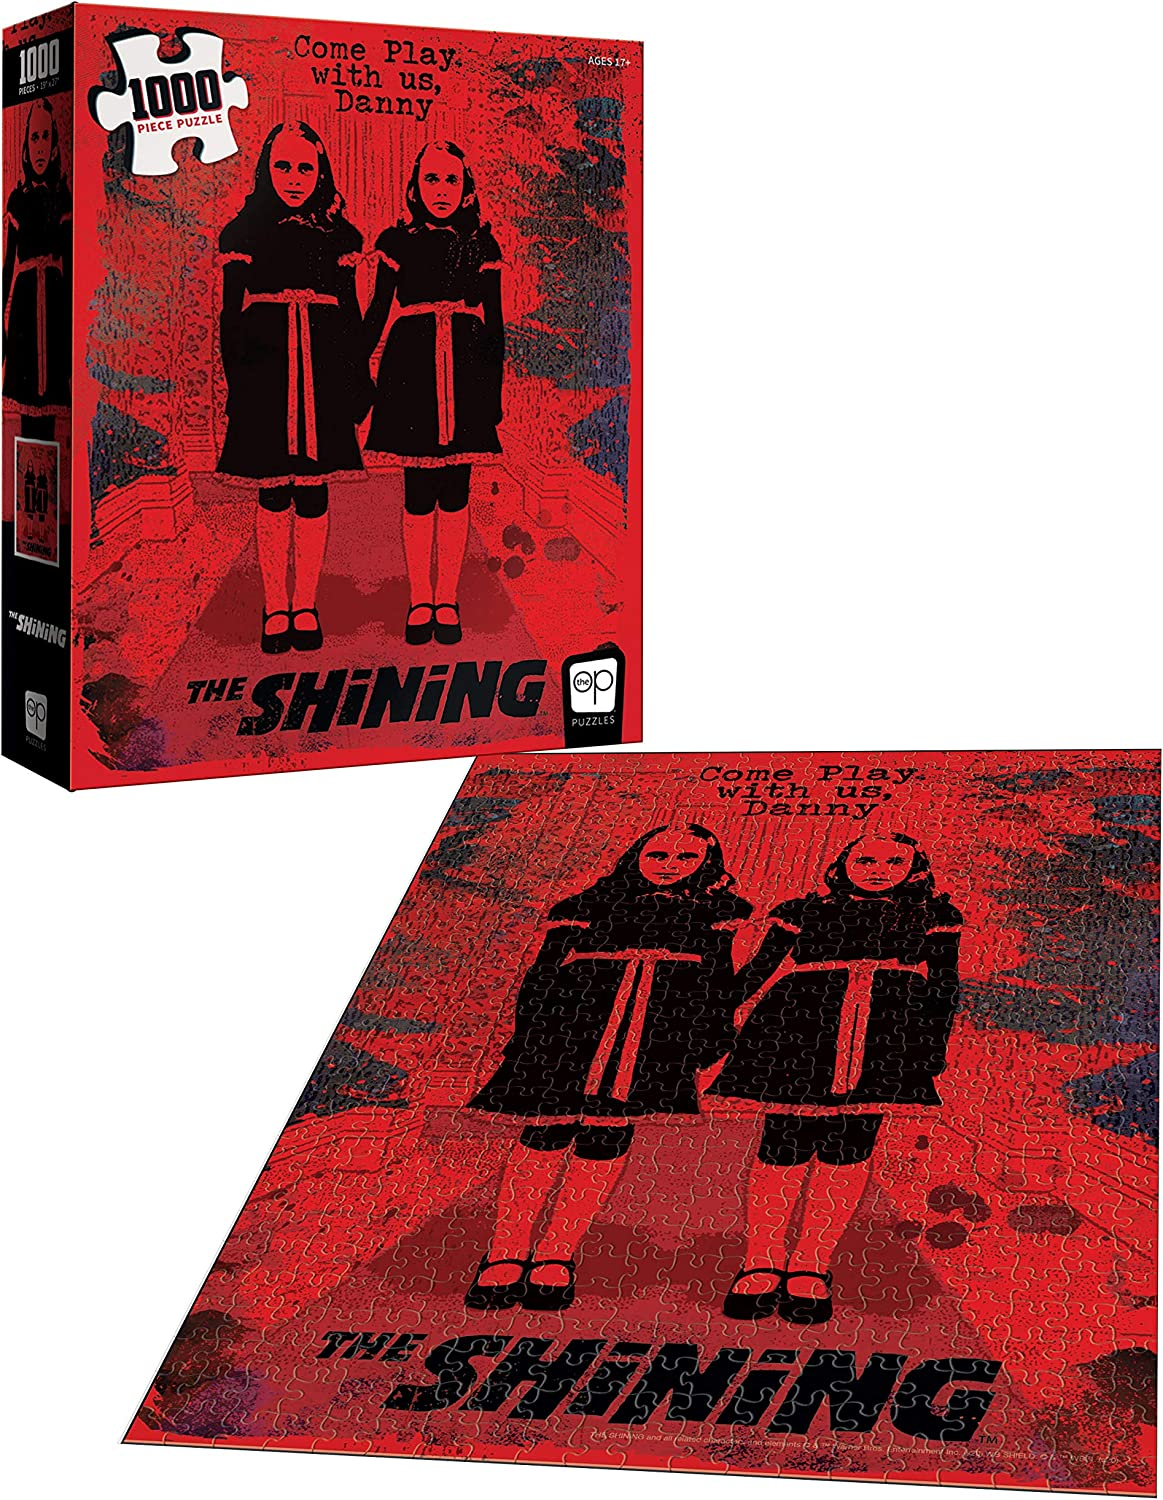 USAOPOLY The Shining Come Play with Us 1000 Piece Jigsaw Puzzle Officially Licensed The Shining Puzzle Collectible Puzzle Featuring Characters from The Shining Horror Film